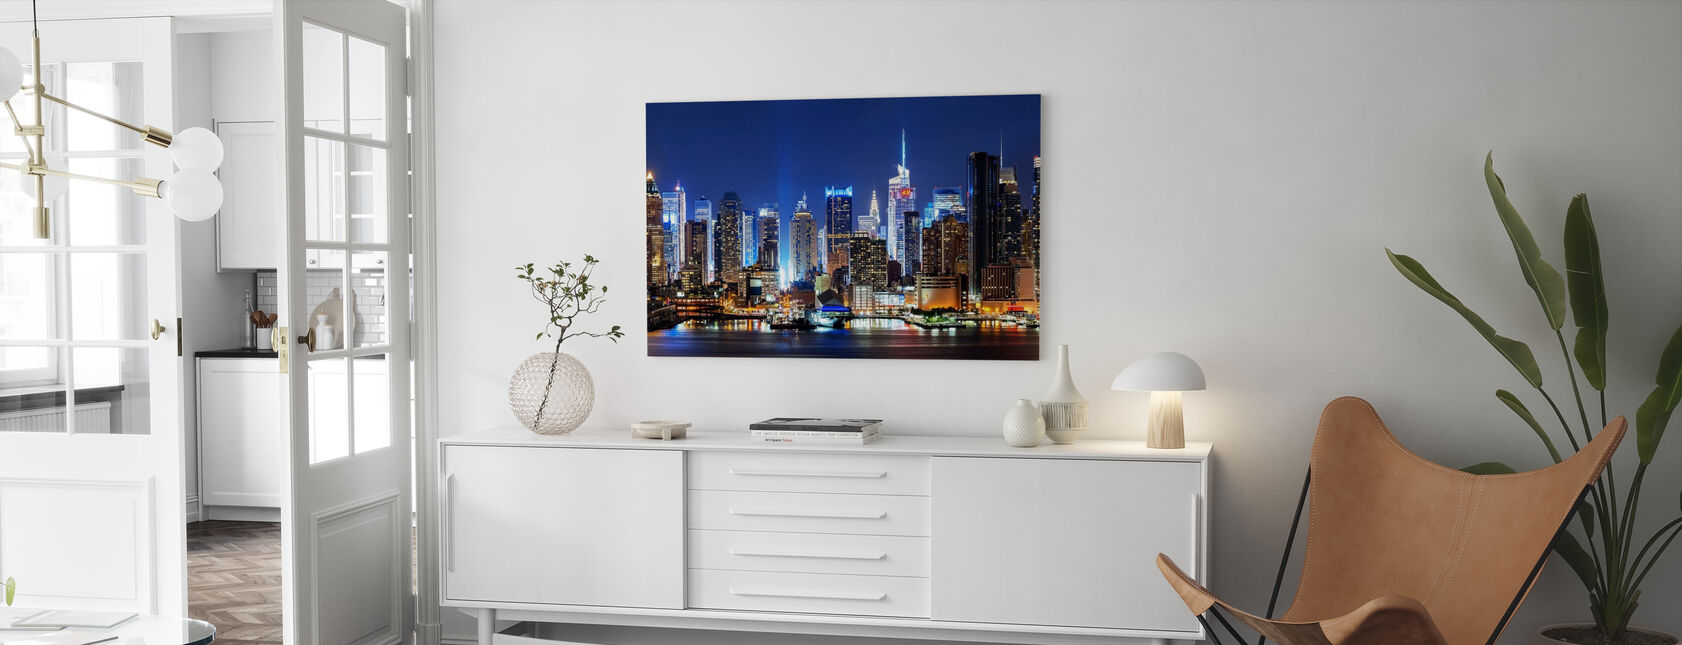 New York City Night Skyline - Canvas print - Living Room